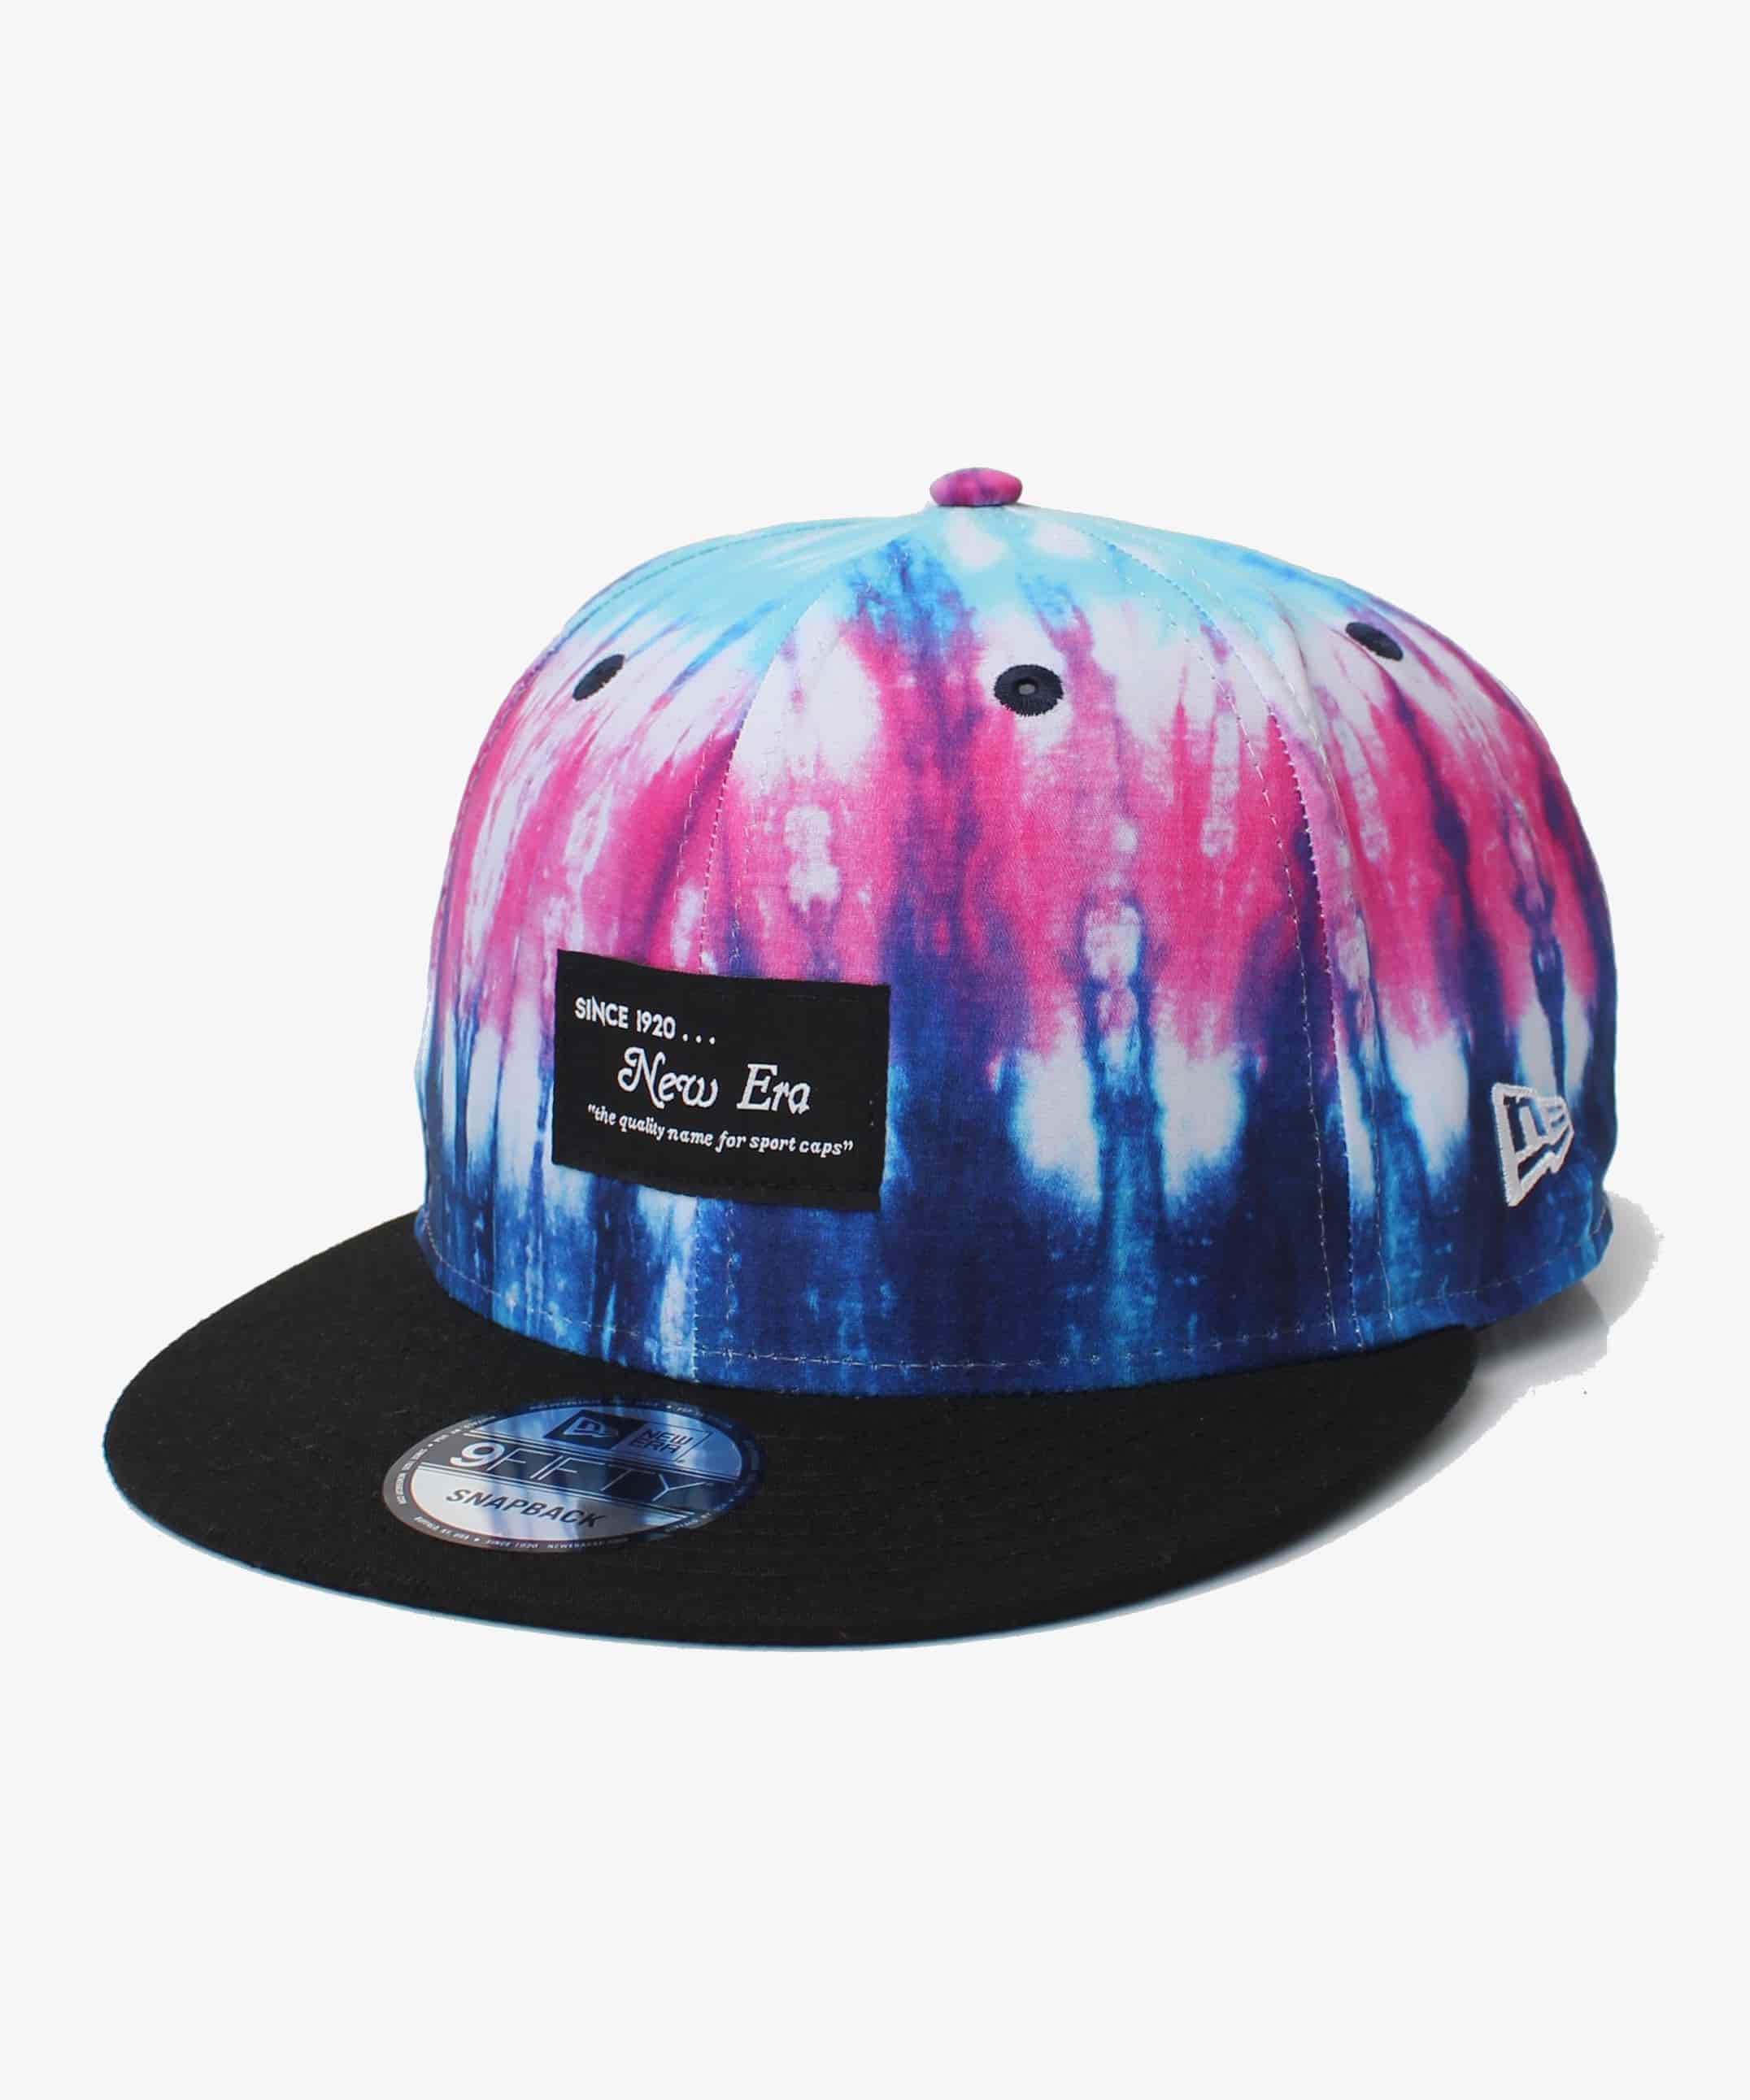 【☆】 NEW ERA 950 TIEDYE